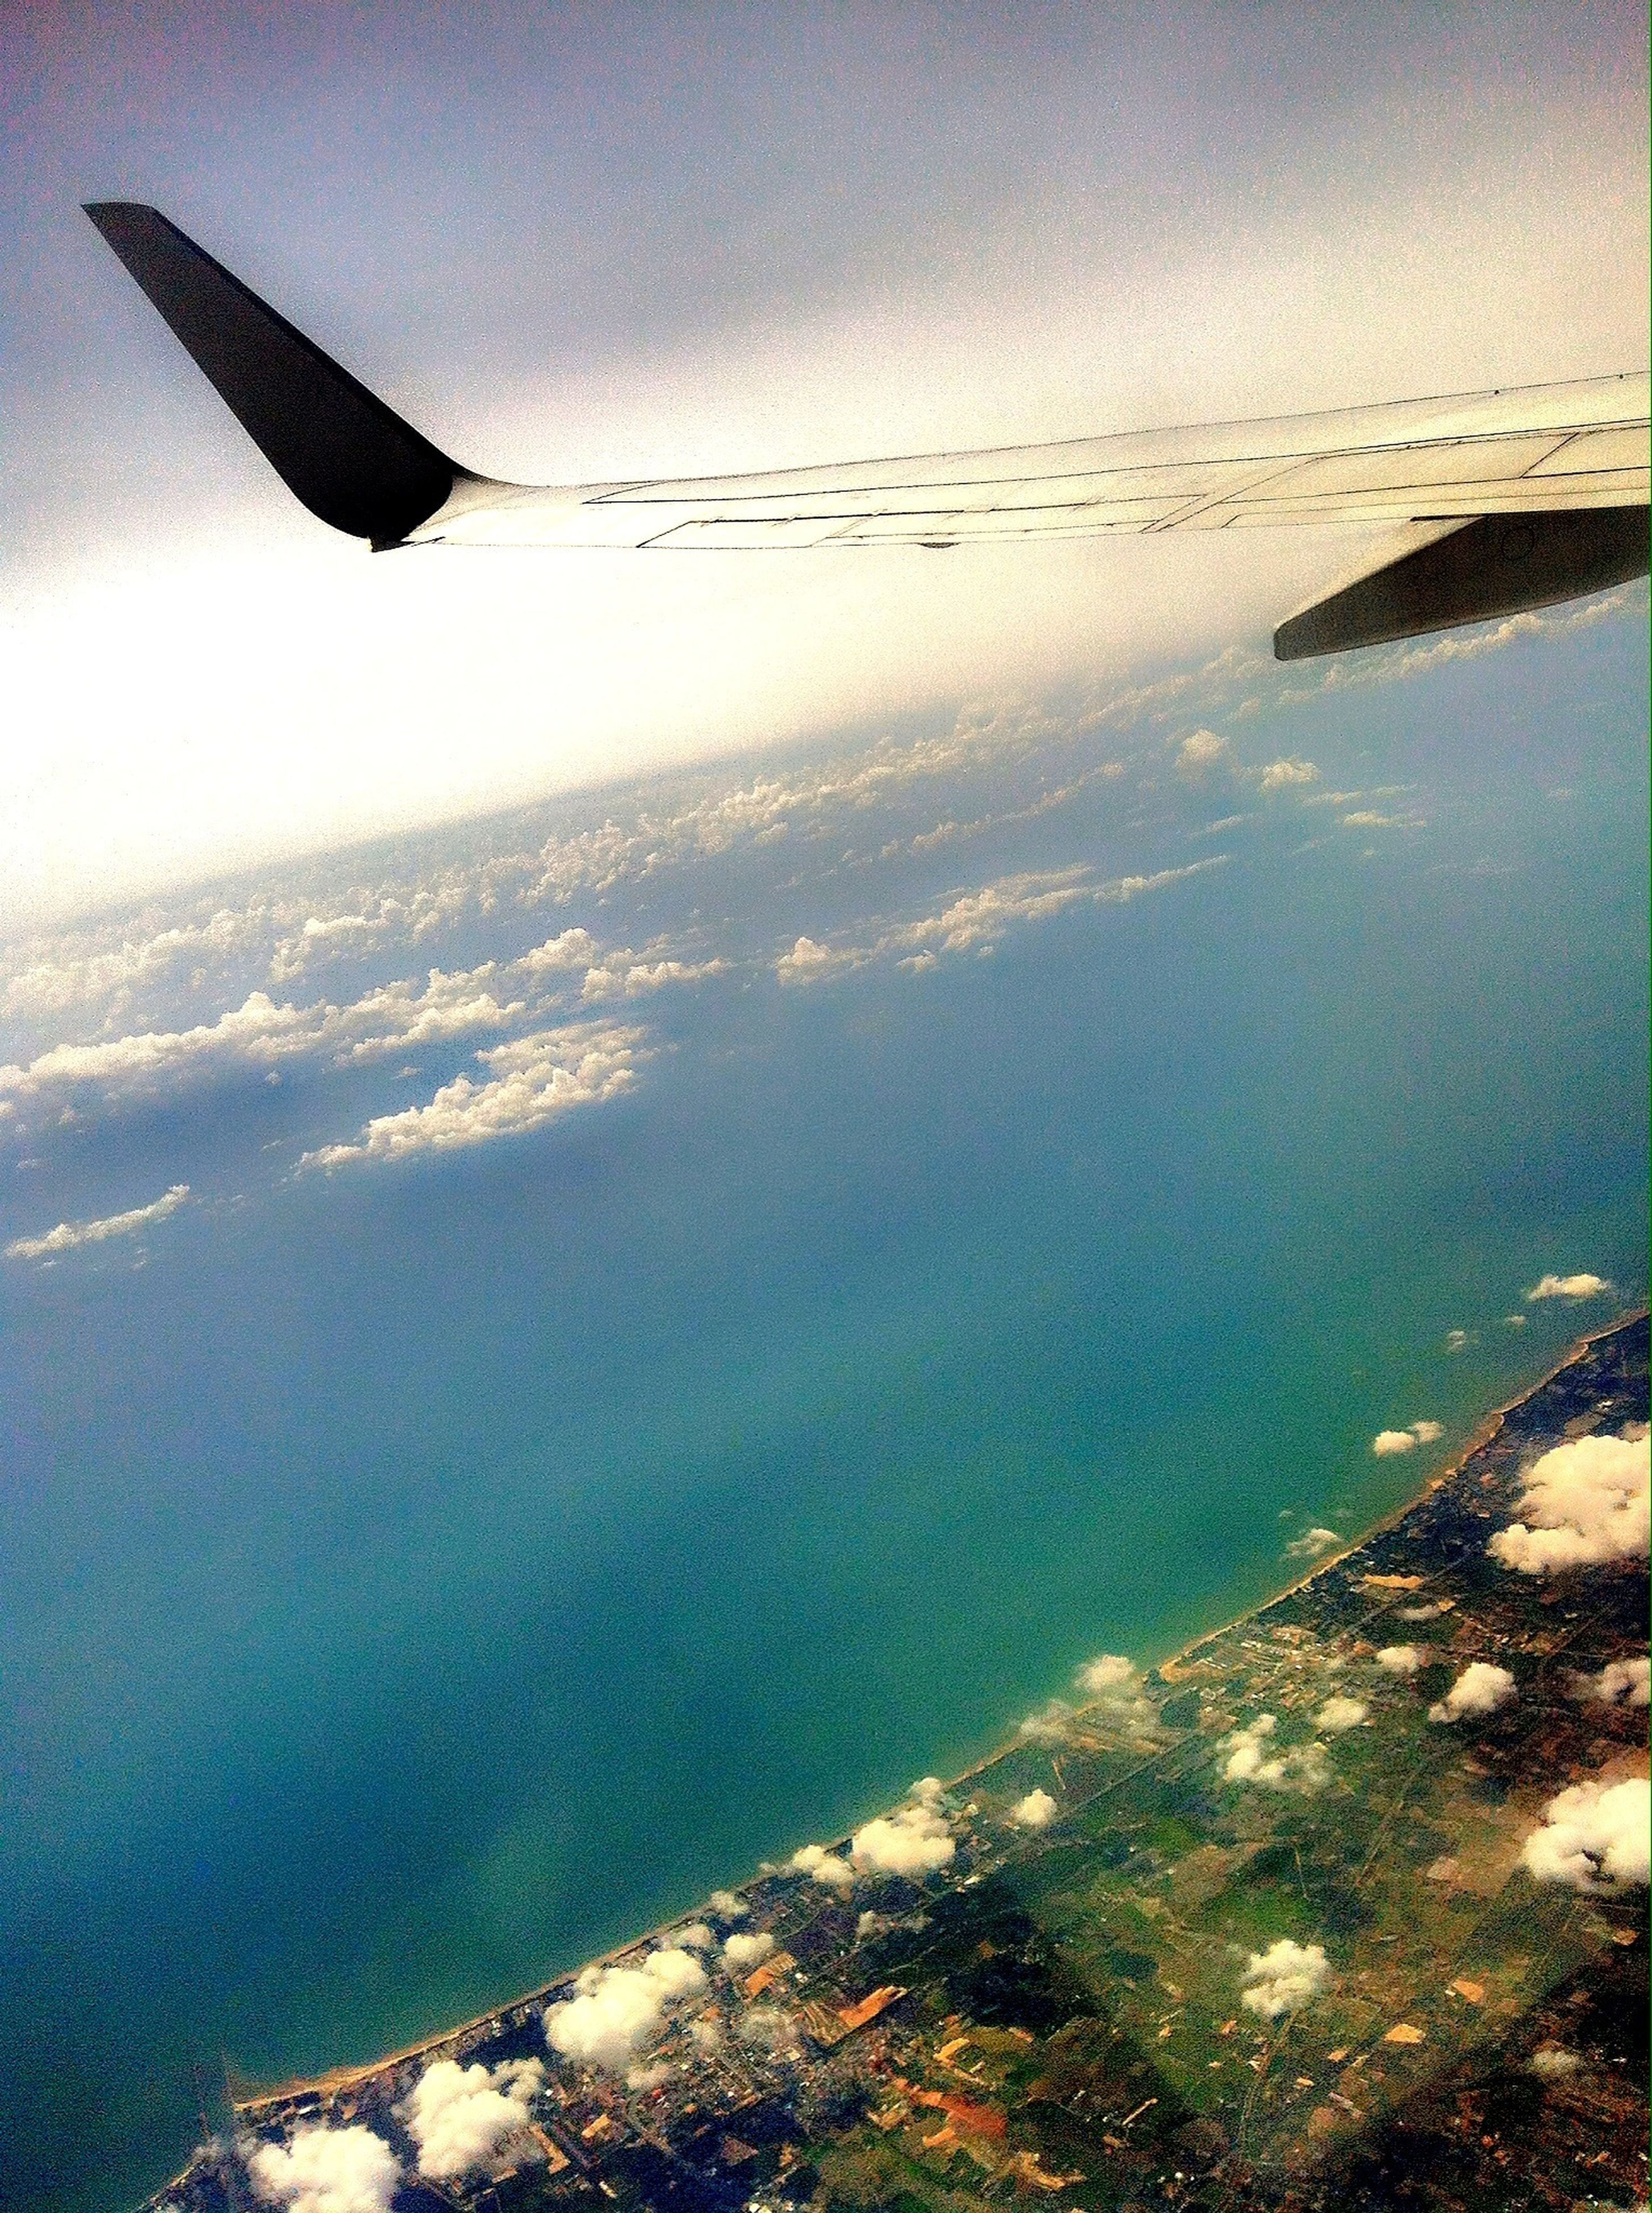 sea, water, aerial view, aircraft wing, scenics, flying, transportation, airplane, mode of transport, tranquil scene, air vehicle, beauty in nature, part of, nature, tranquility, sky, horizon over water, cropped, travel, mid-air